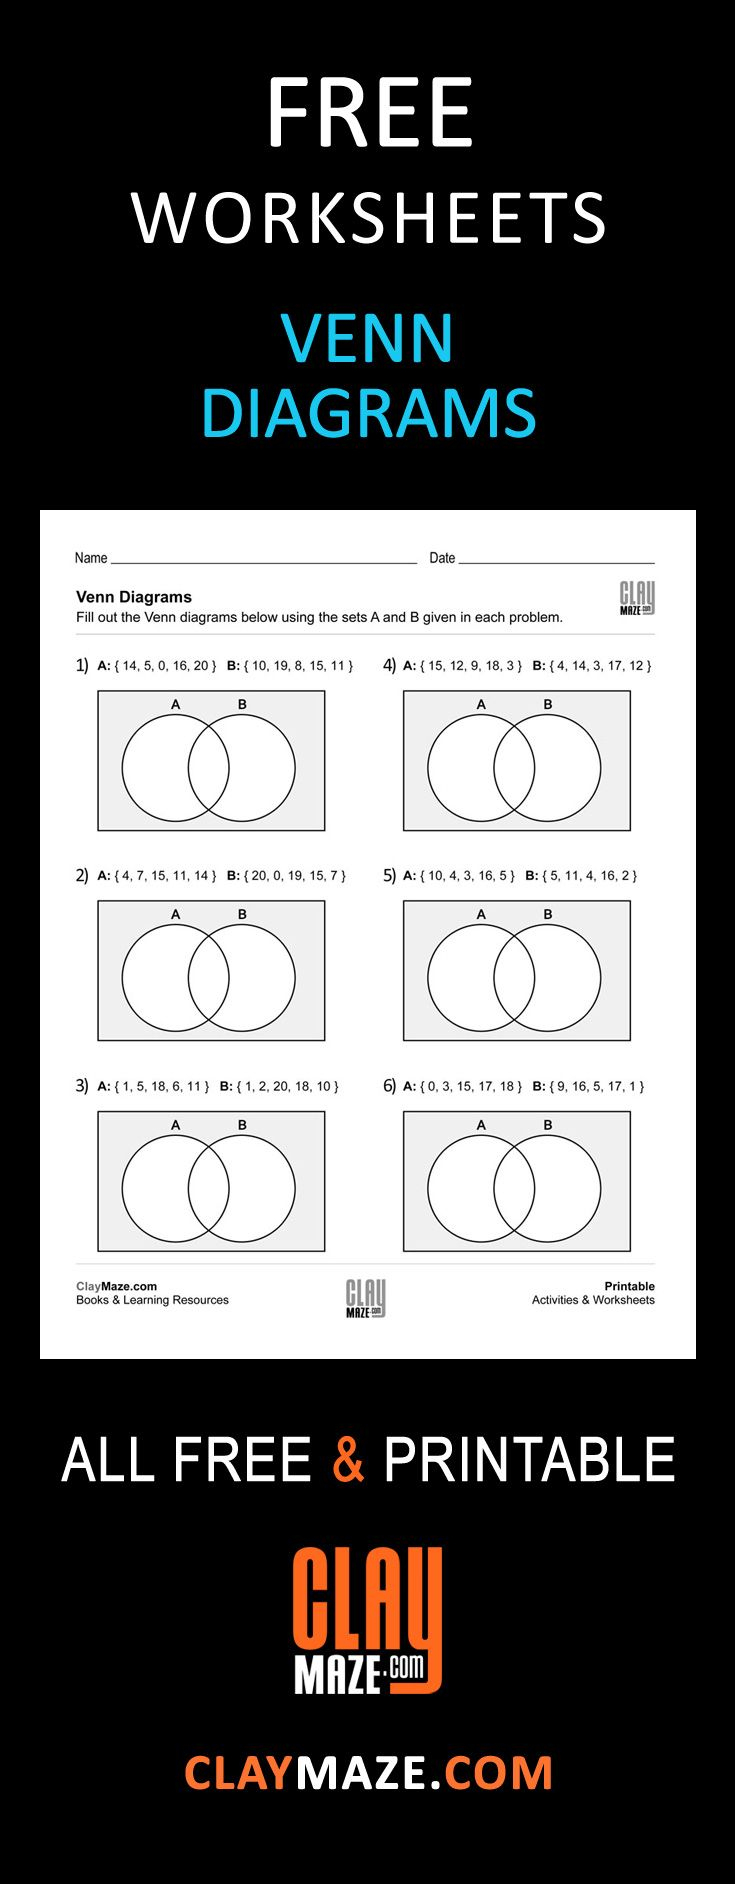 Free, Printable Venn Diagrams Worksheet - These Are Good For | Free Printable Venn Diagram Math Worksheets